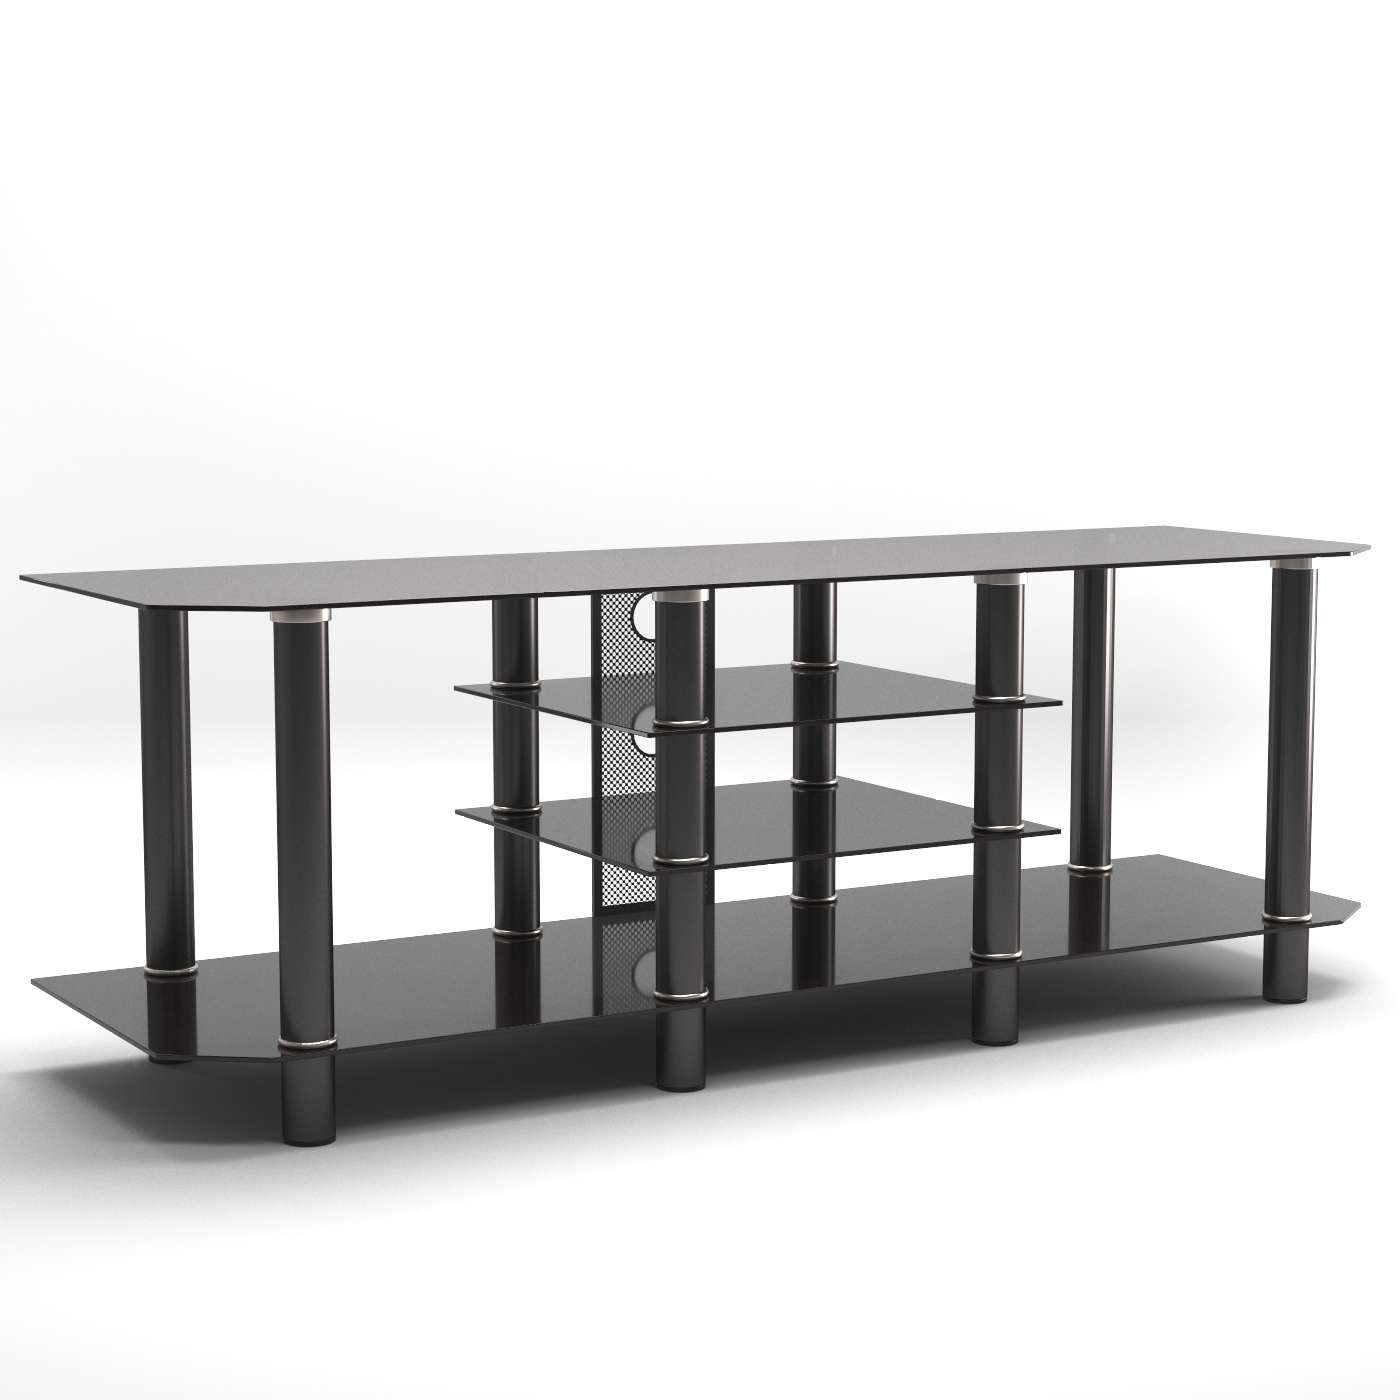 Salerno 60 Inch Glass Tv Stand In Black Inside Black Glass Tv Stands (View 11 of 15)